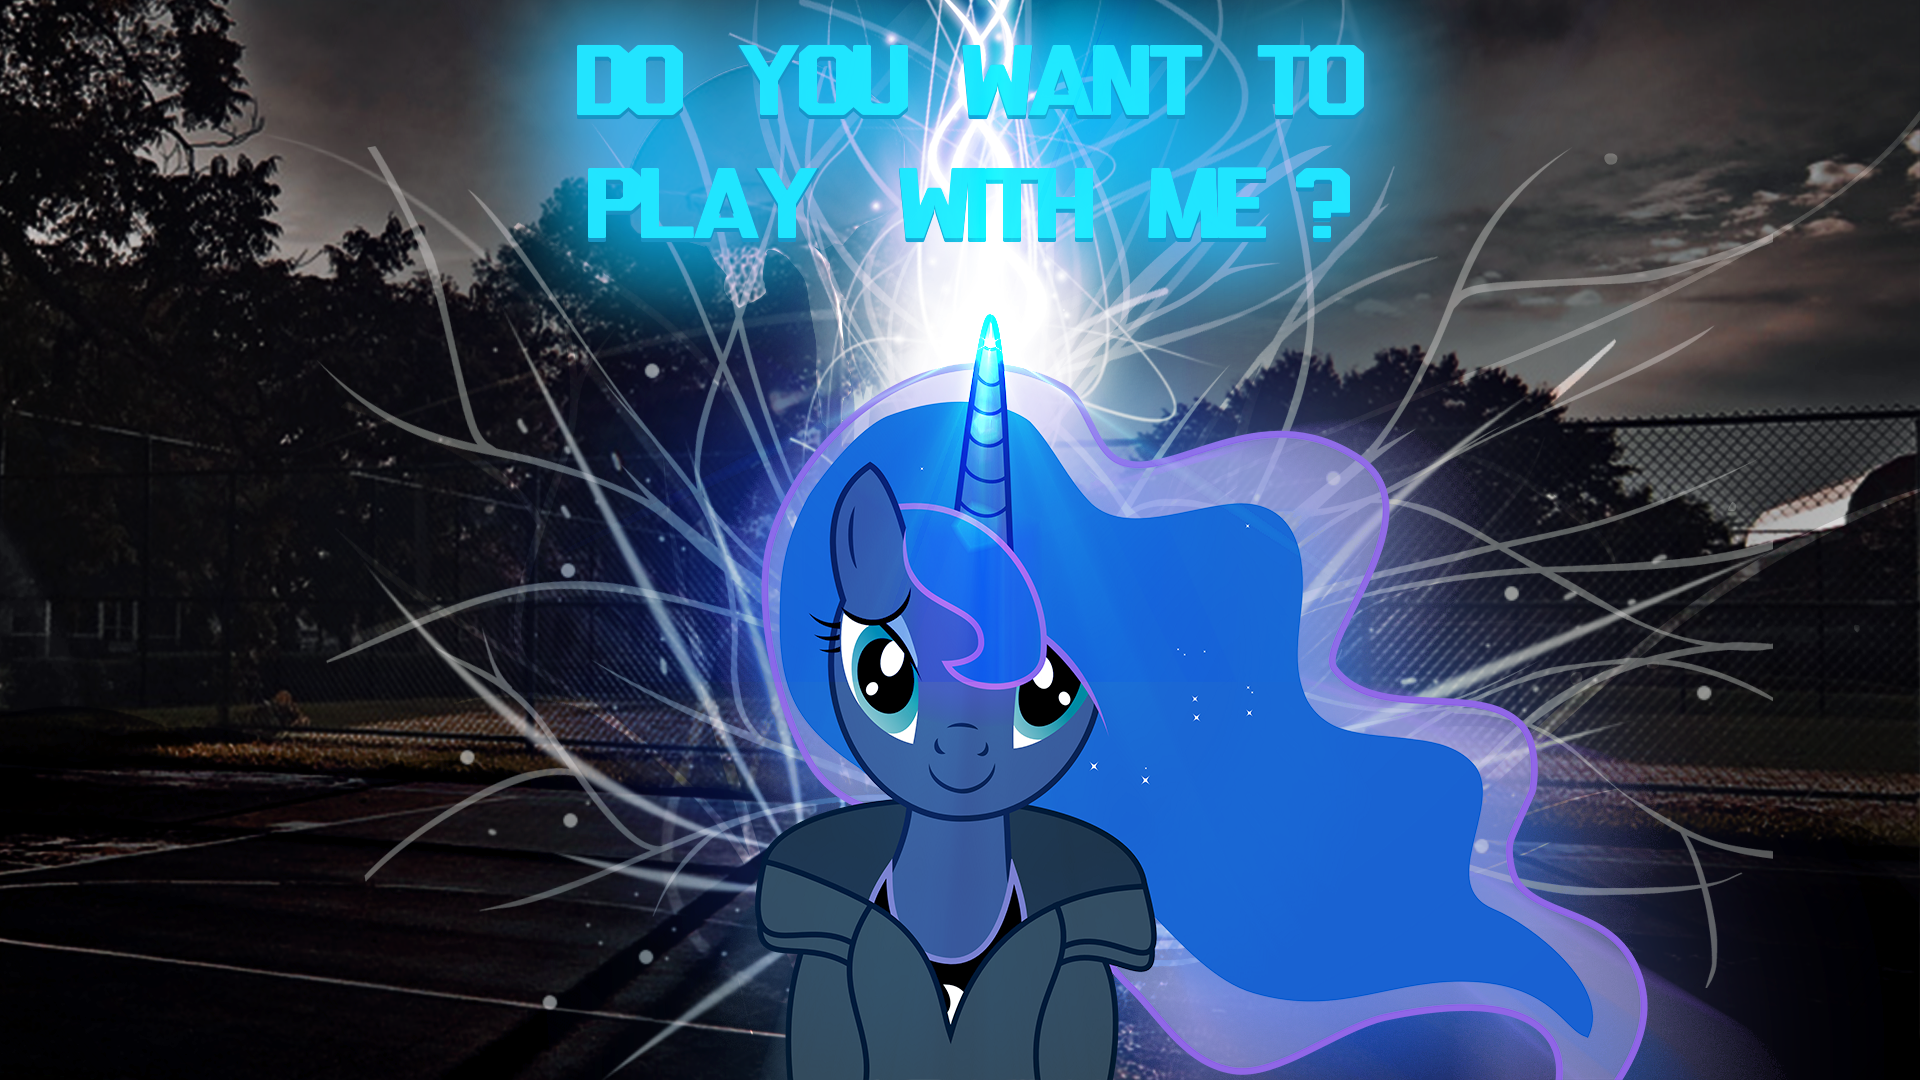 Do you want to play with me? by proffes